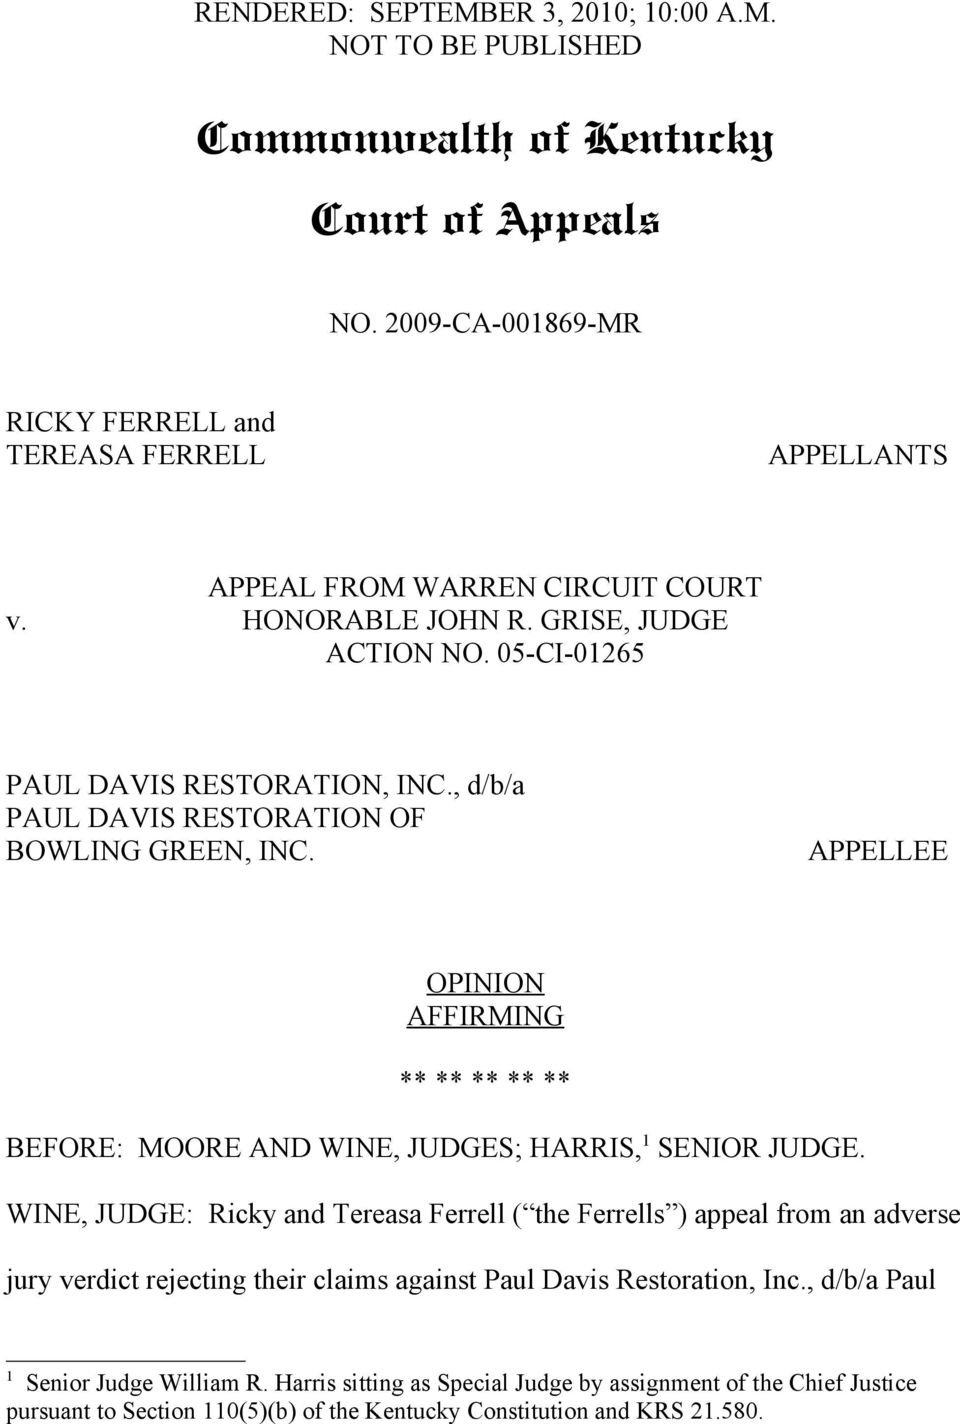 Commonwealth of Kentucky Court of Appeals - PDF